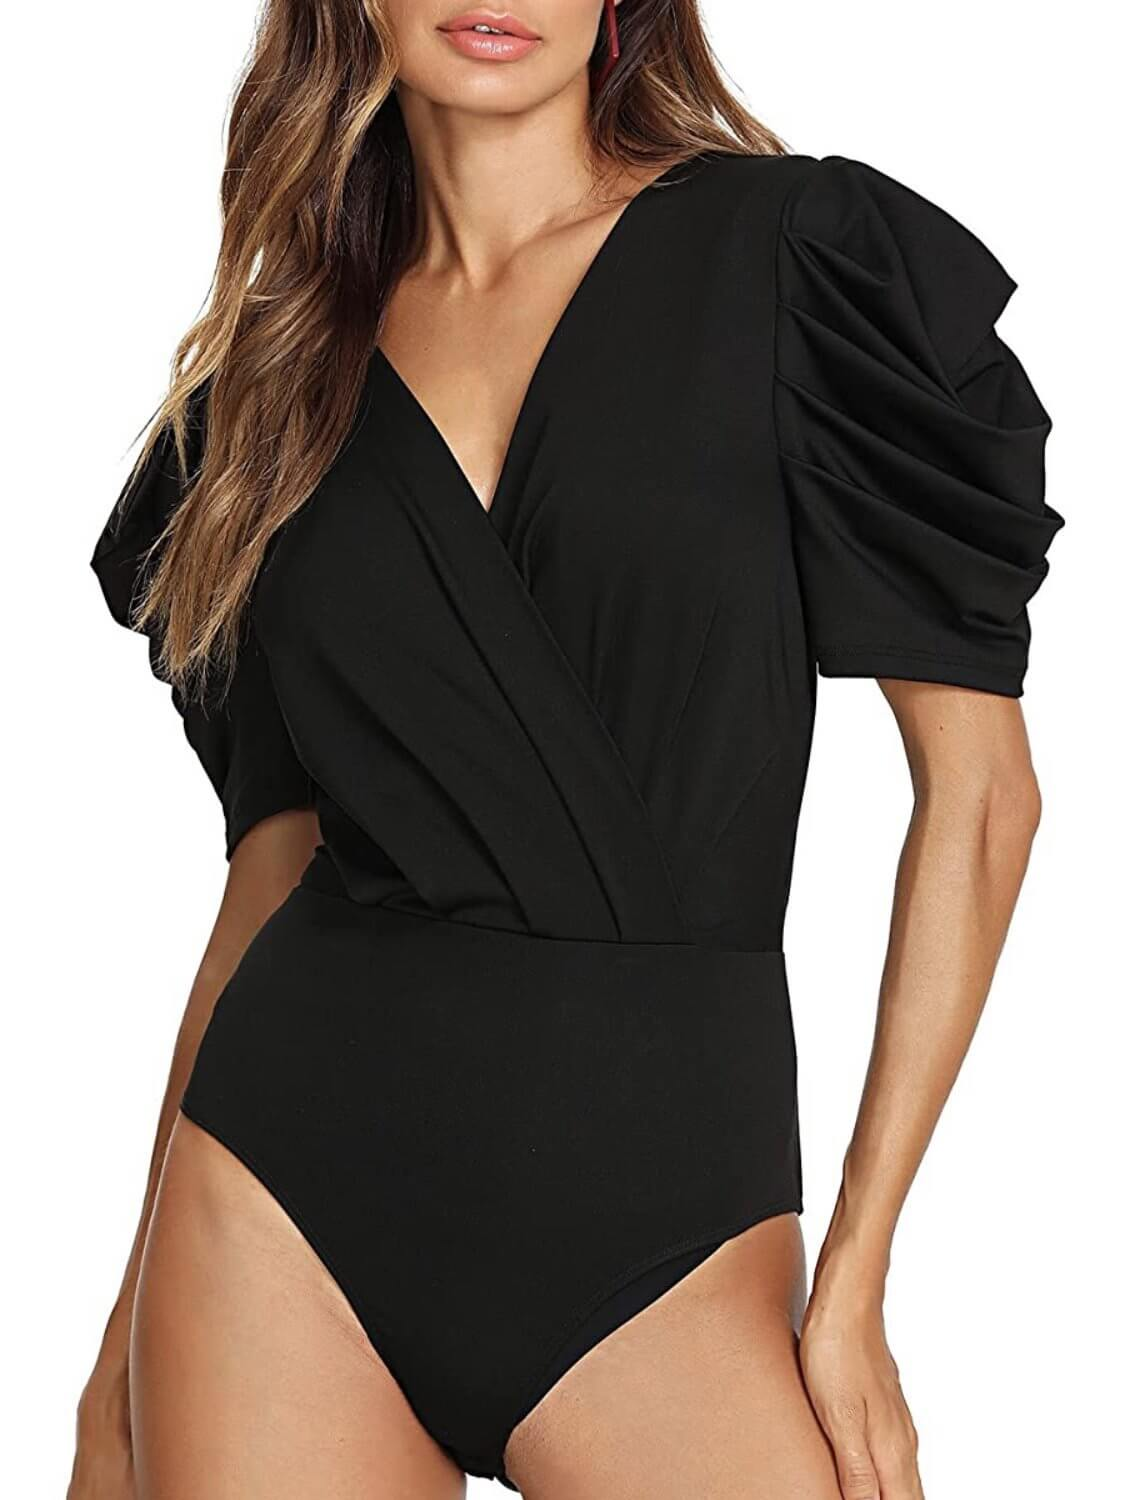 black bodysuit with V-neck, short sleeves, loose fit